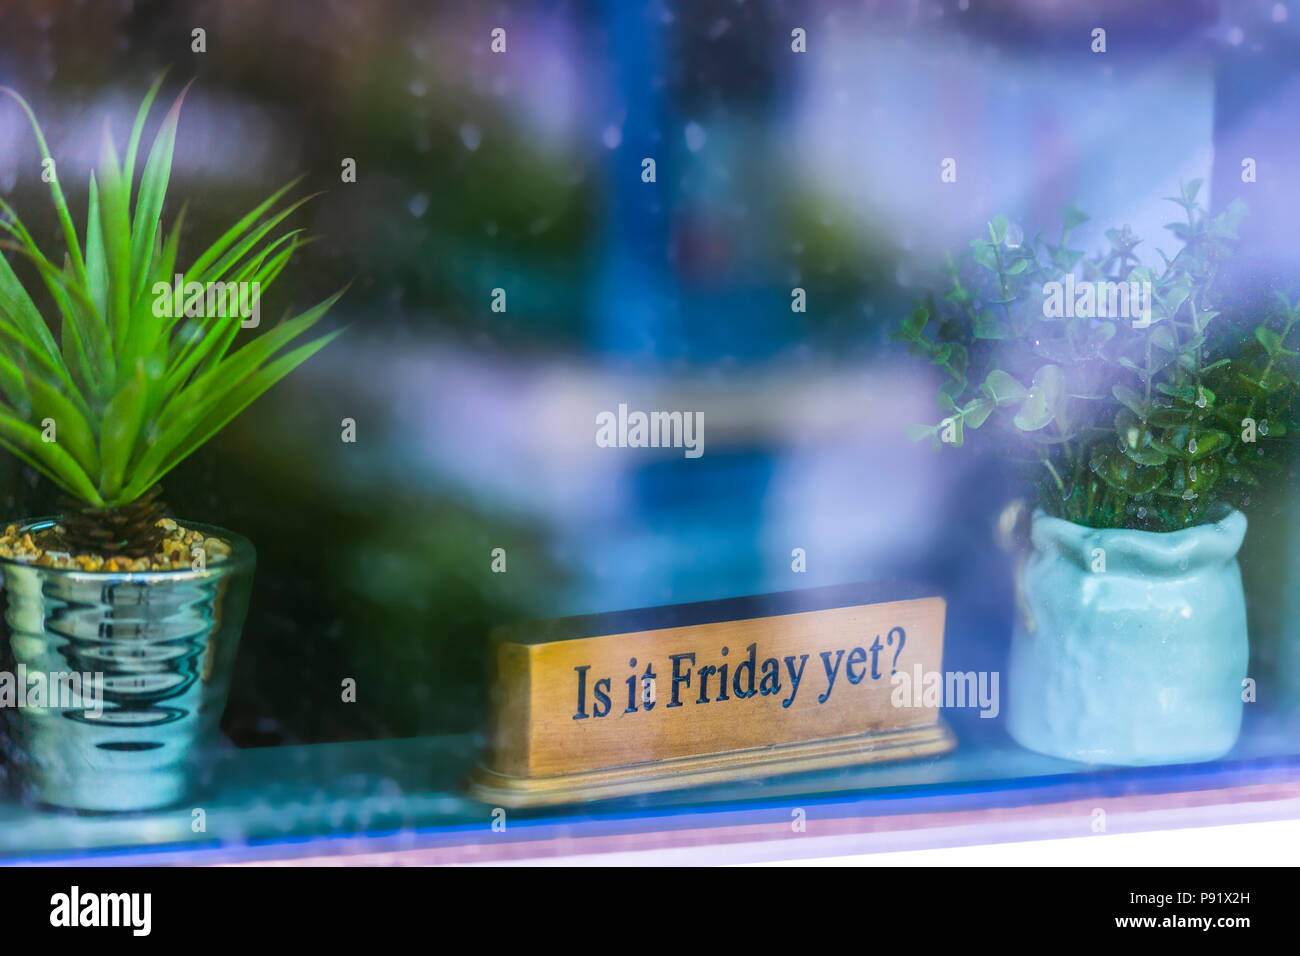 Is it friday yet sign in window - Stock Image